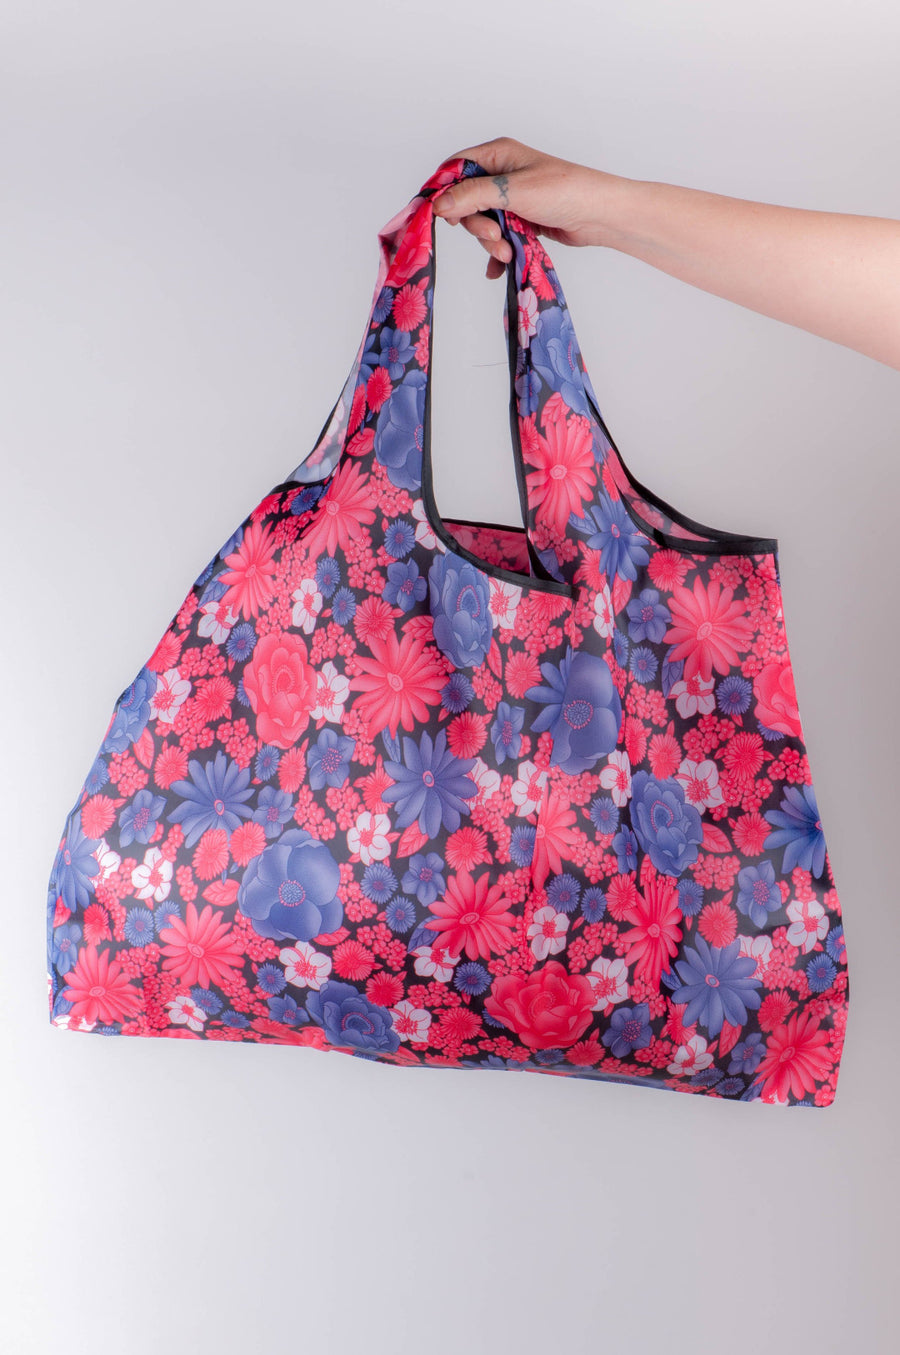 Sac magasinage réutilisable-pliable